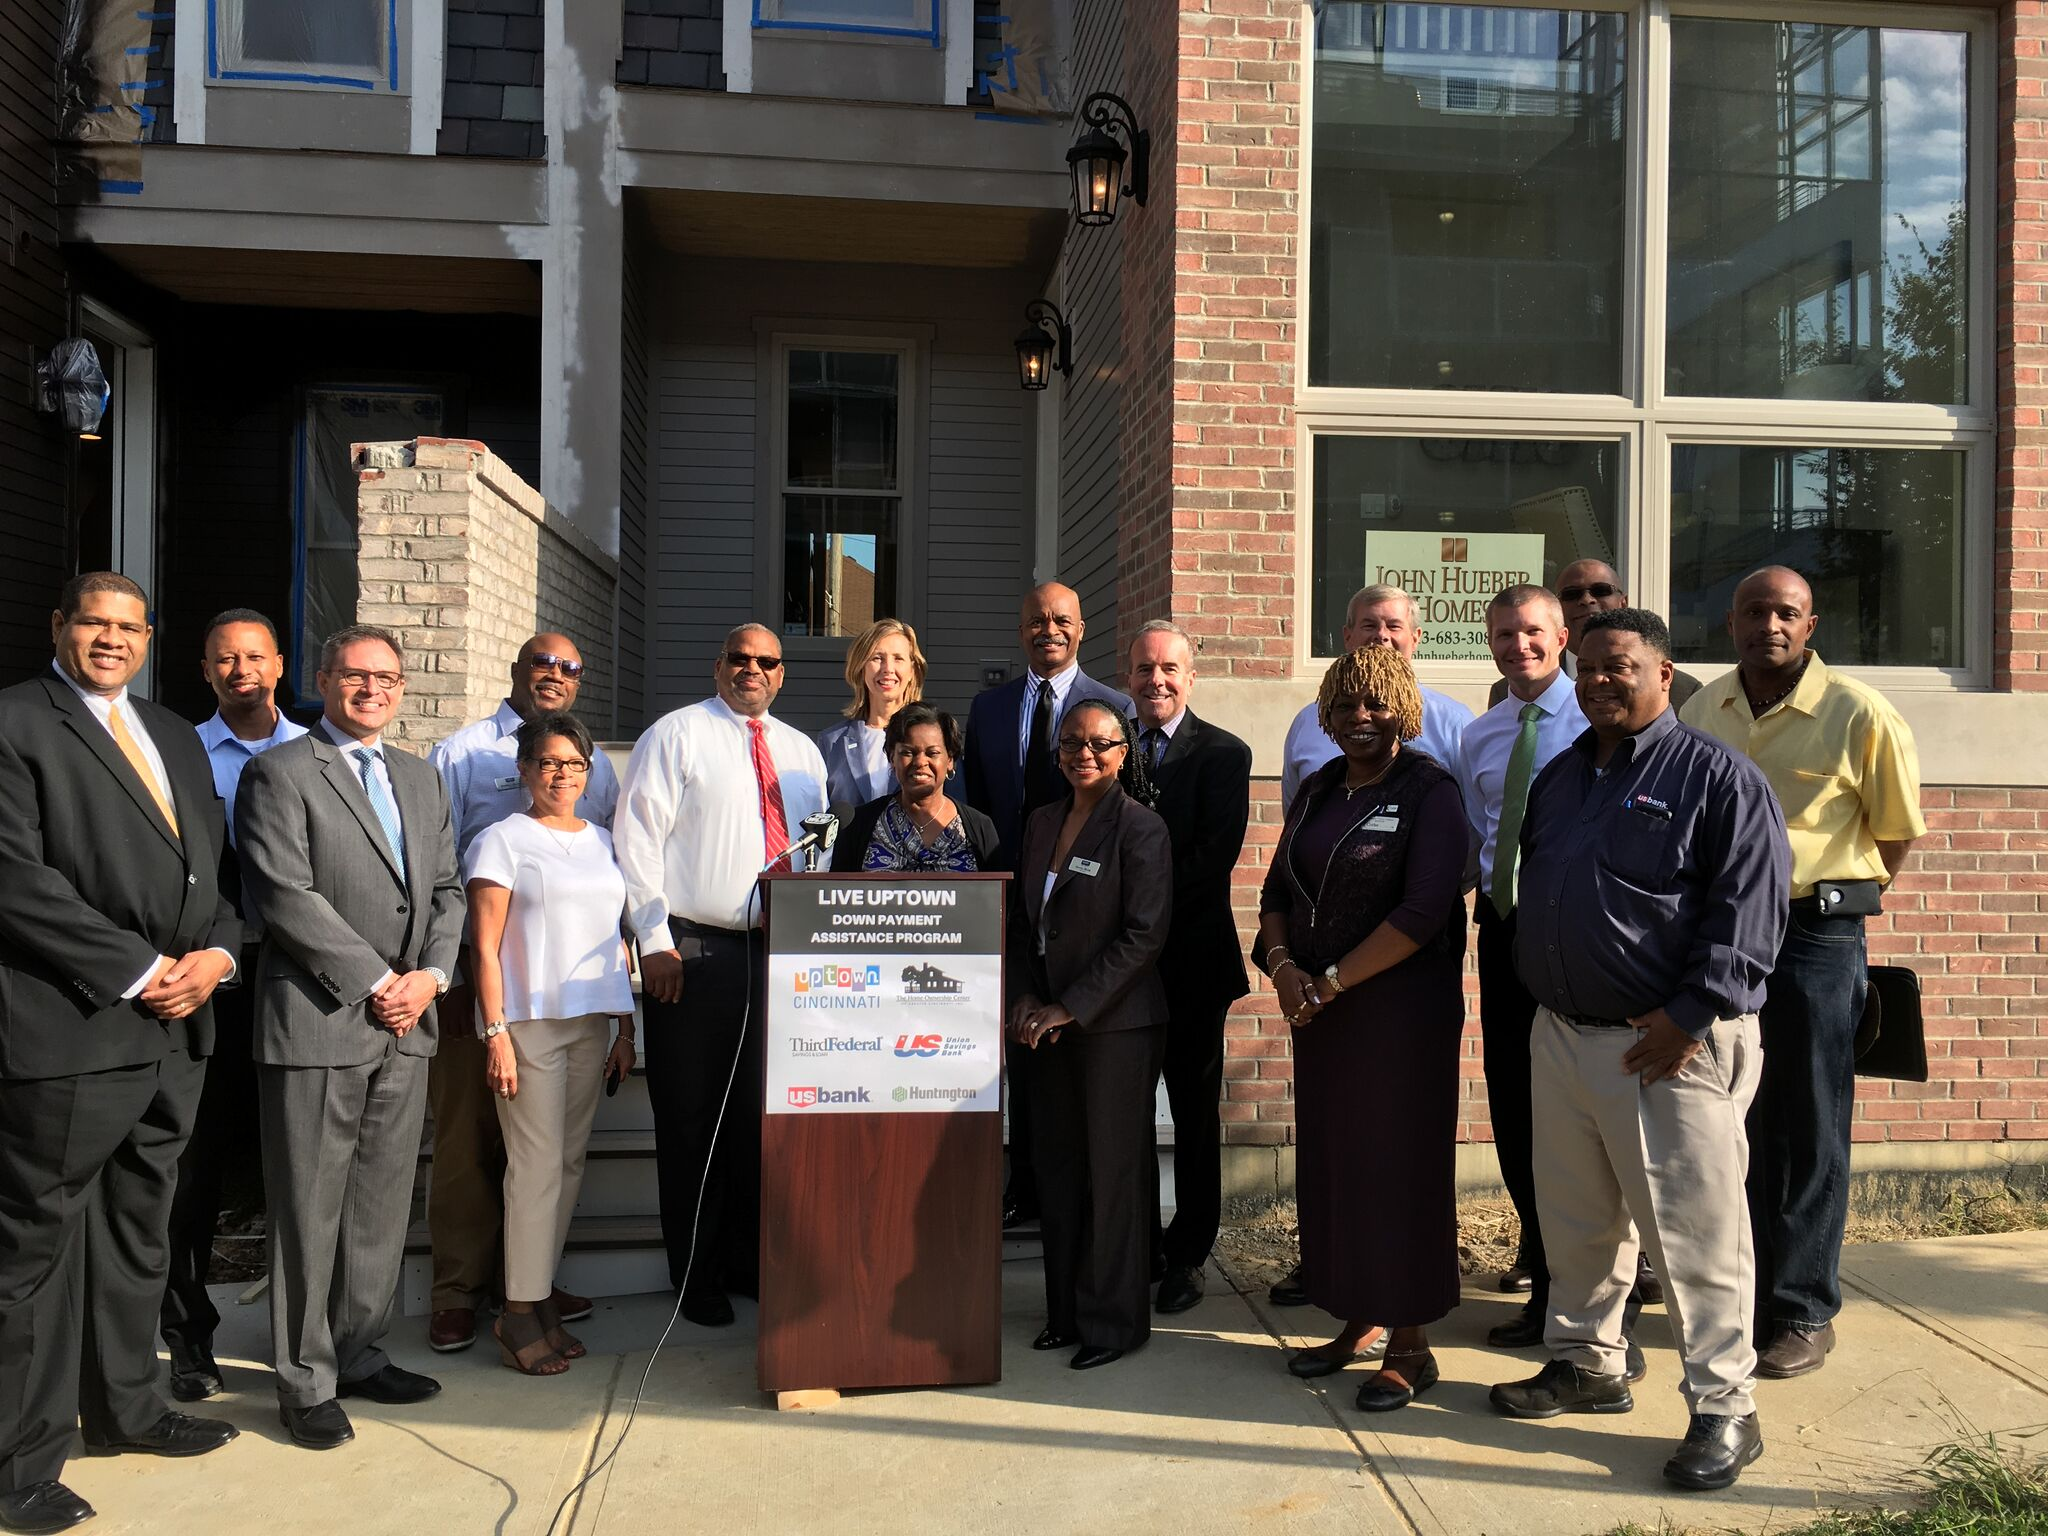 Partners in the Live Uptown Down Payment Assistance Program.